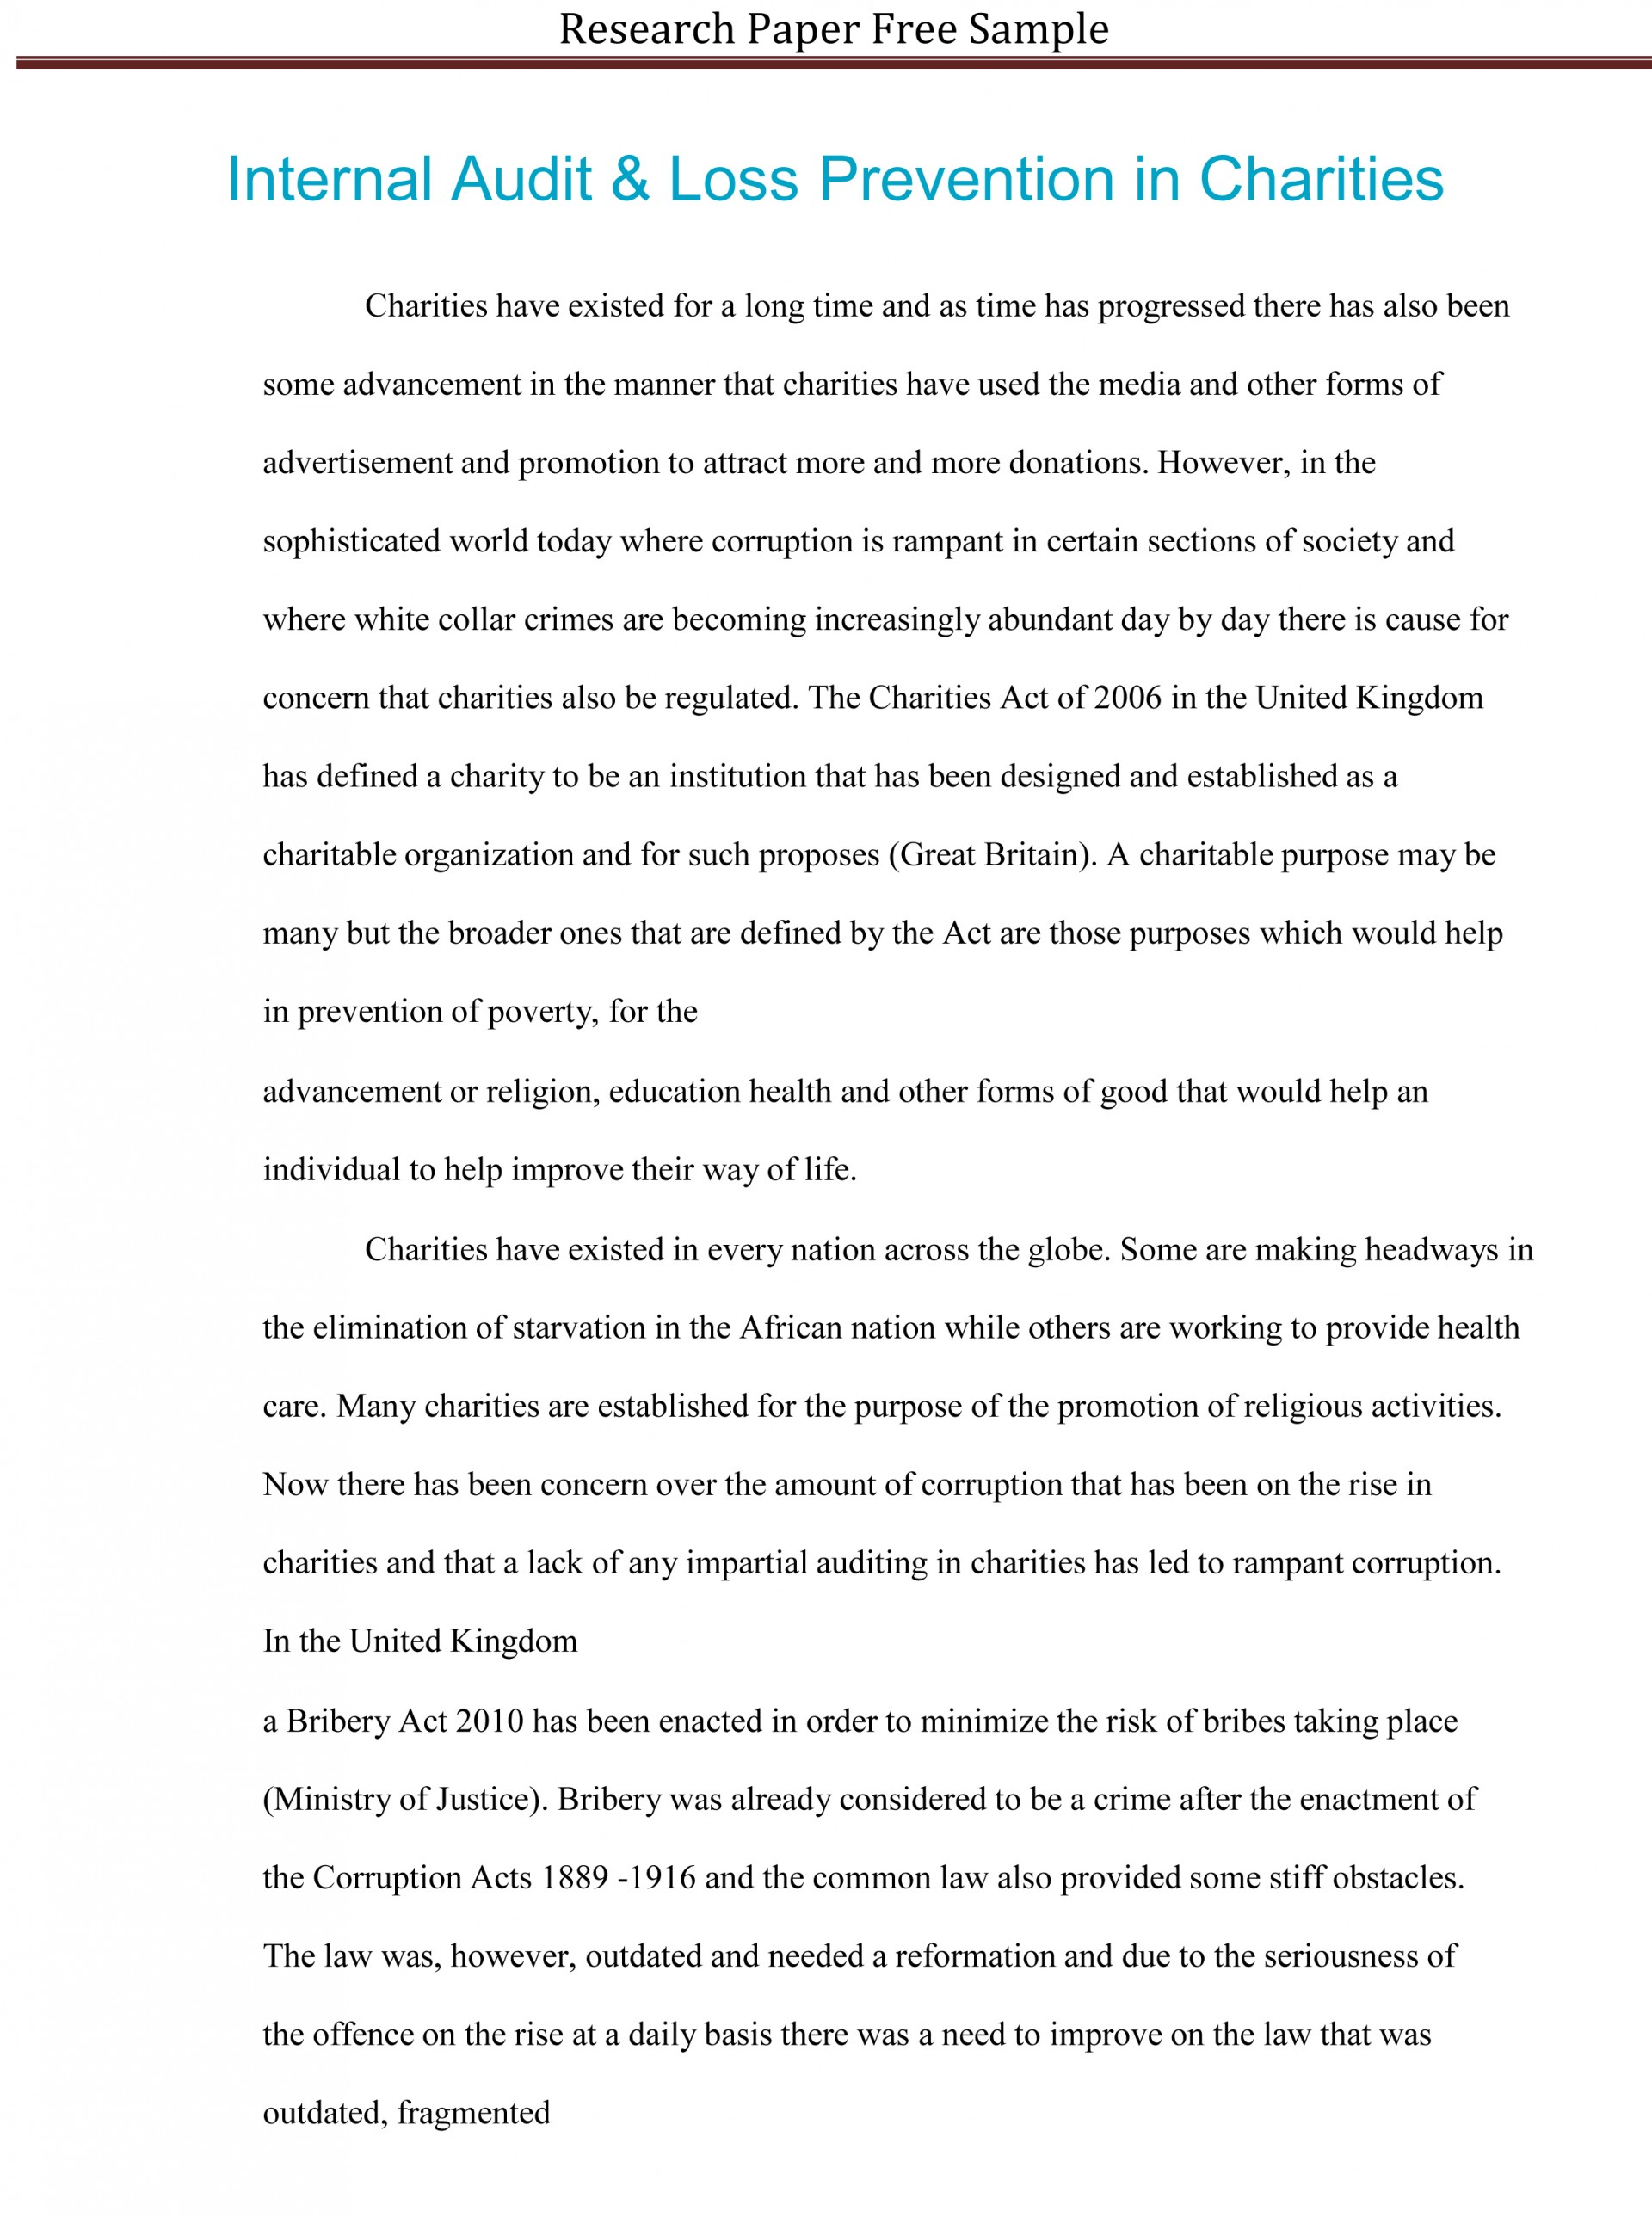 006 Research Paper Sample Argumentative Topics Wonderful Education Essay On About 1920